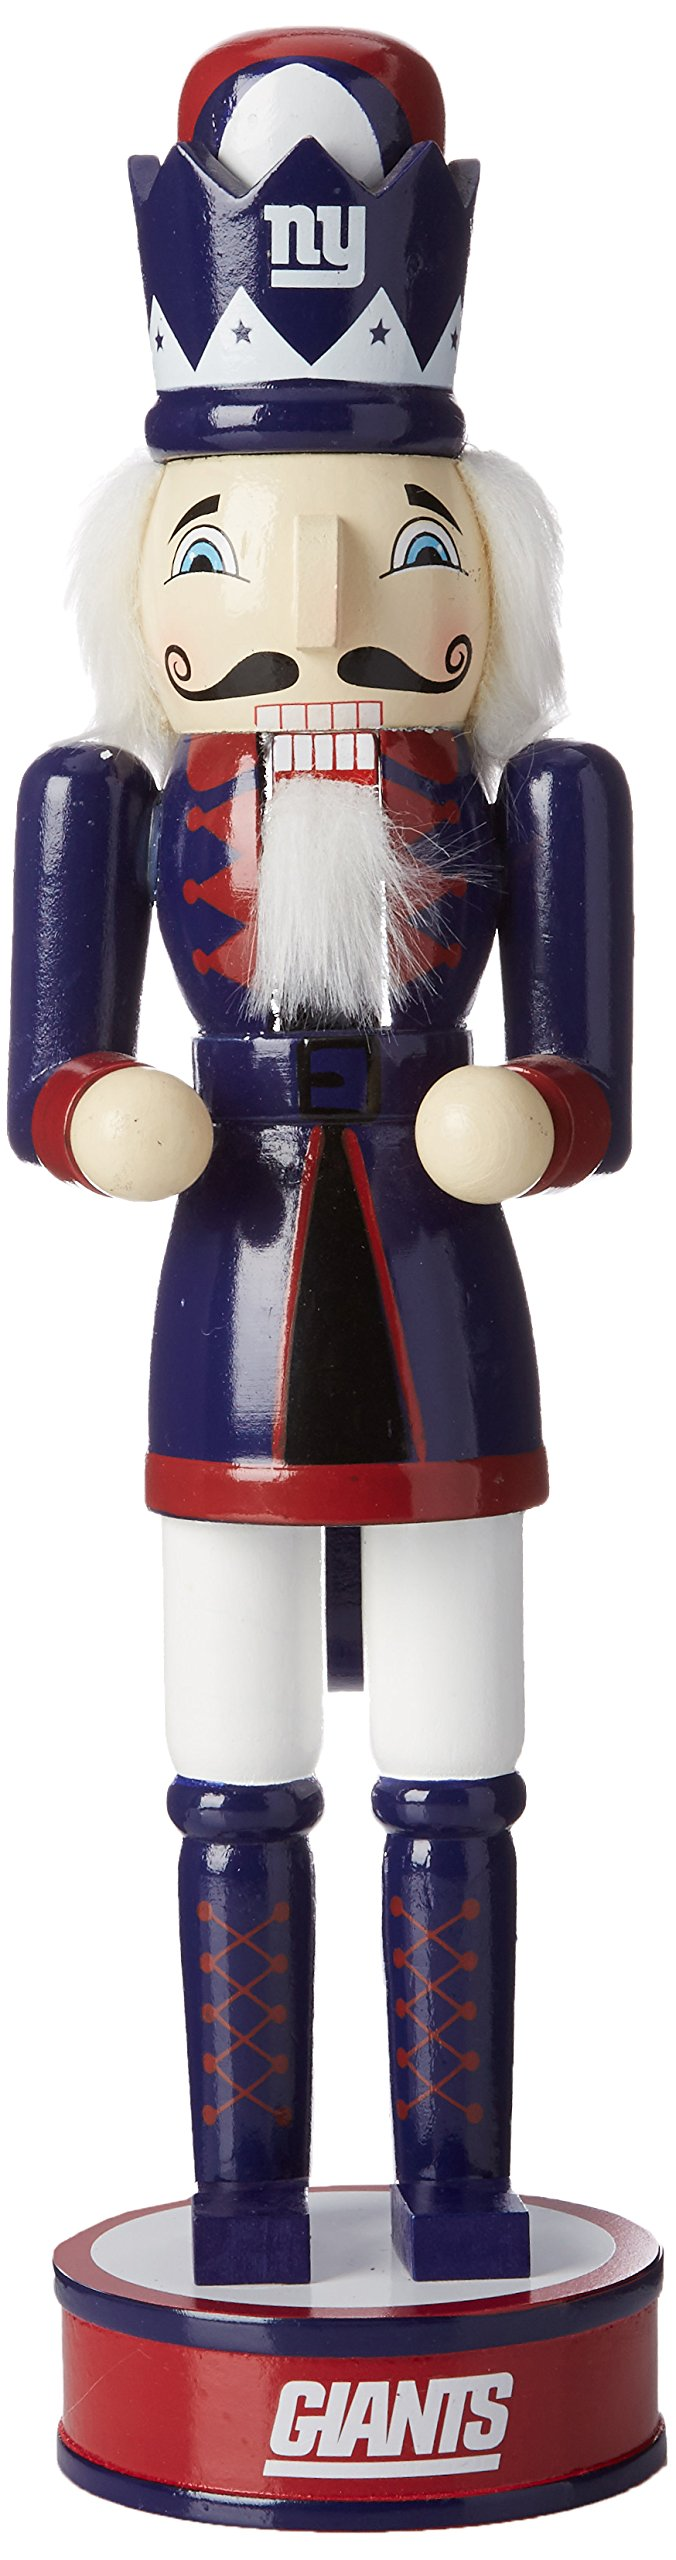 FOCO New York Giants 14'' Holiday Nutcracker by FOCO